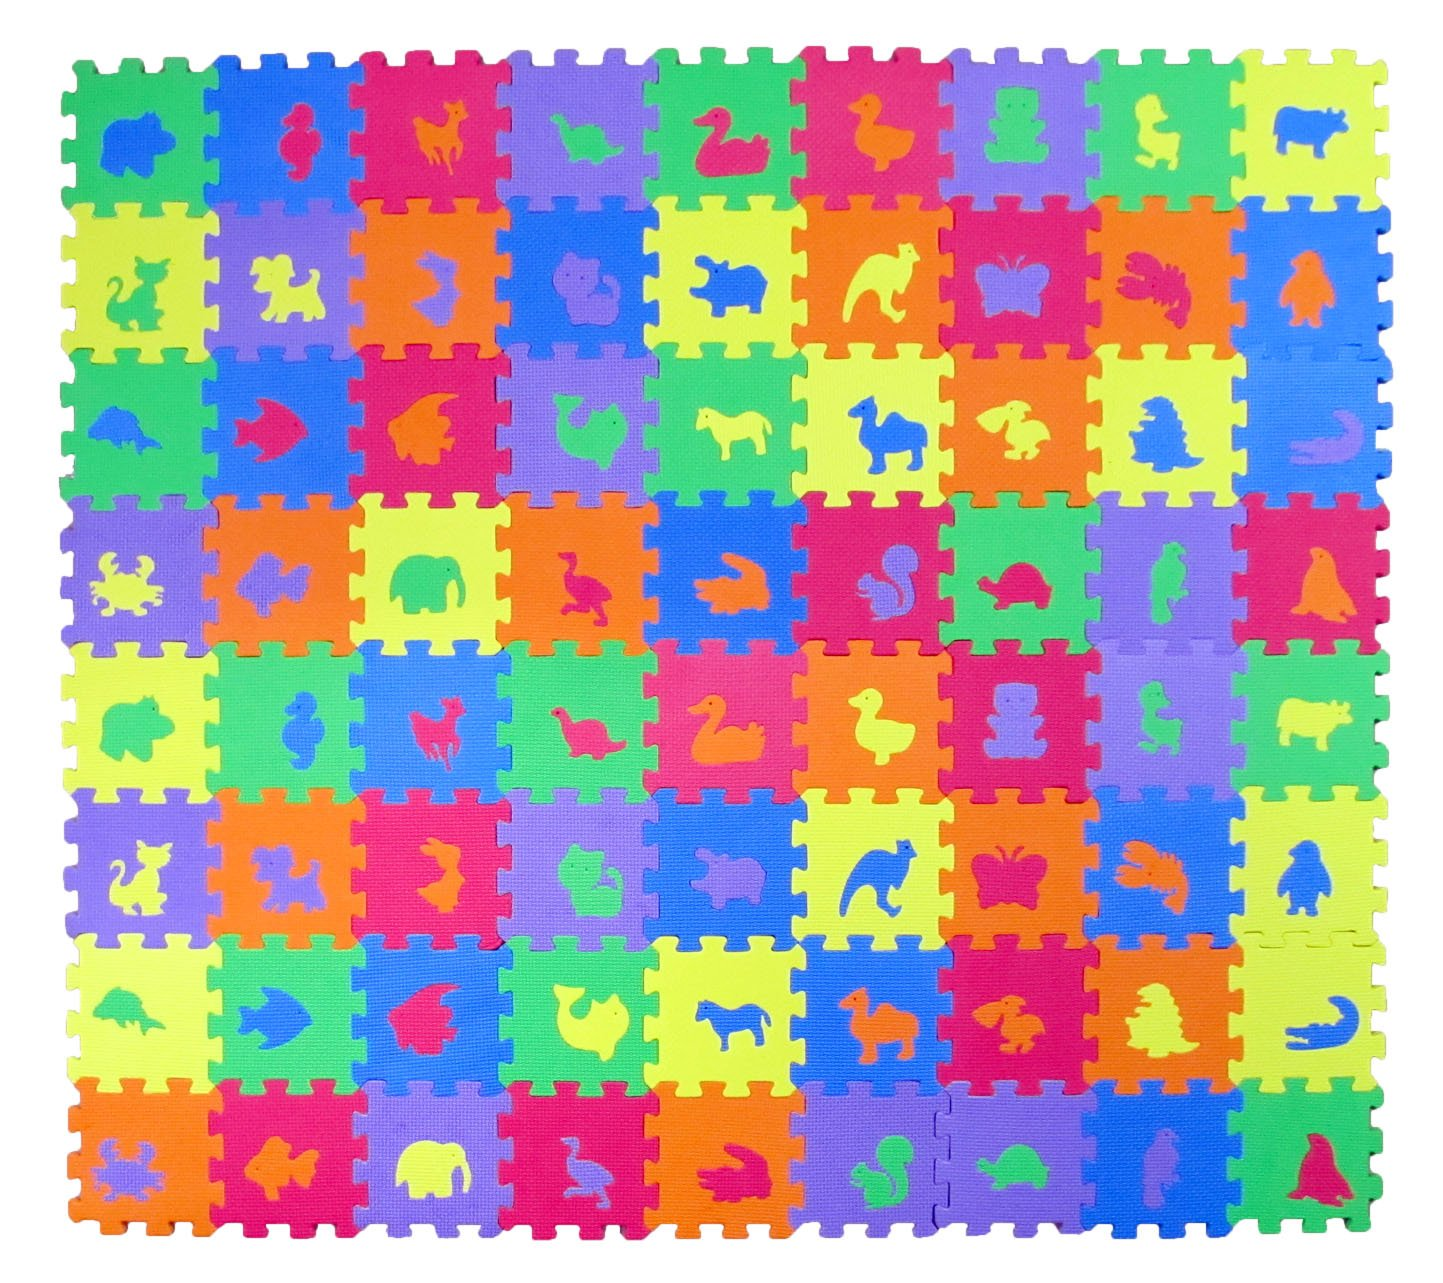 Floor mats for kids - Amazon Com Animal Zoo Educational Foam Puzzle Floor Mat For Kids 72 Pieces 6 X6 Squares Blocks Covers 12 Sq Ft Toys Games